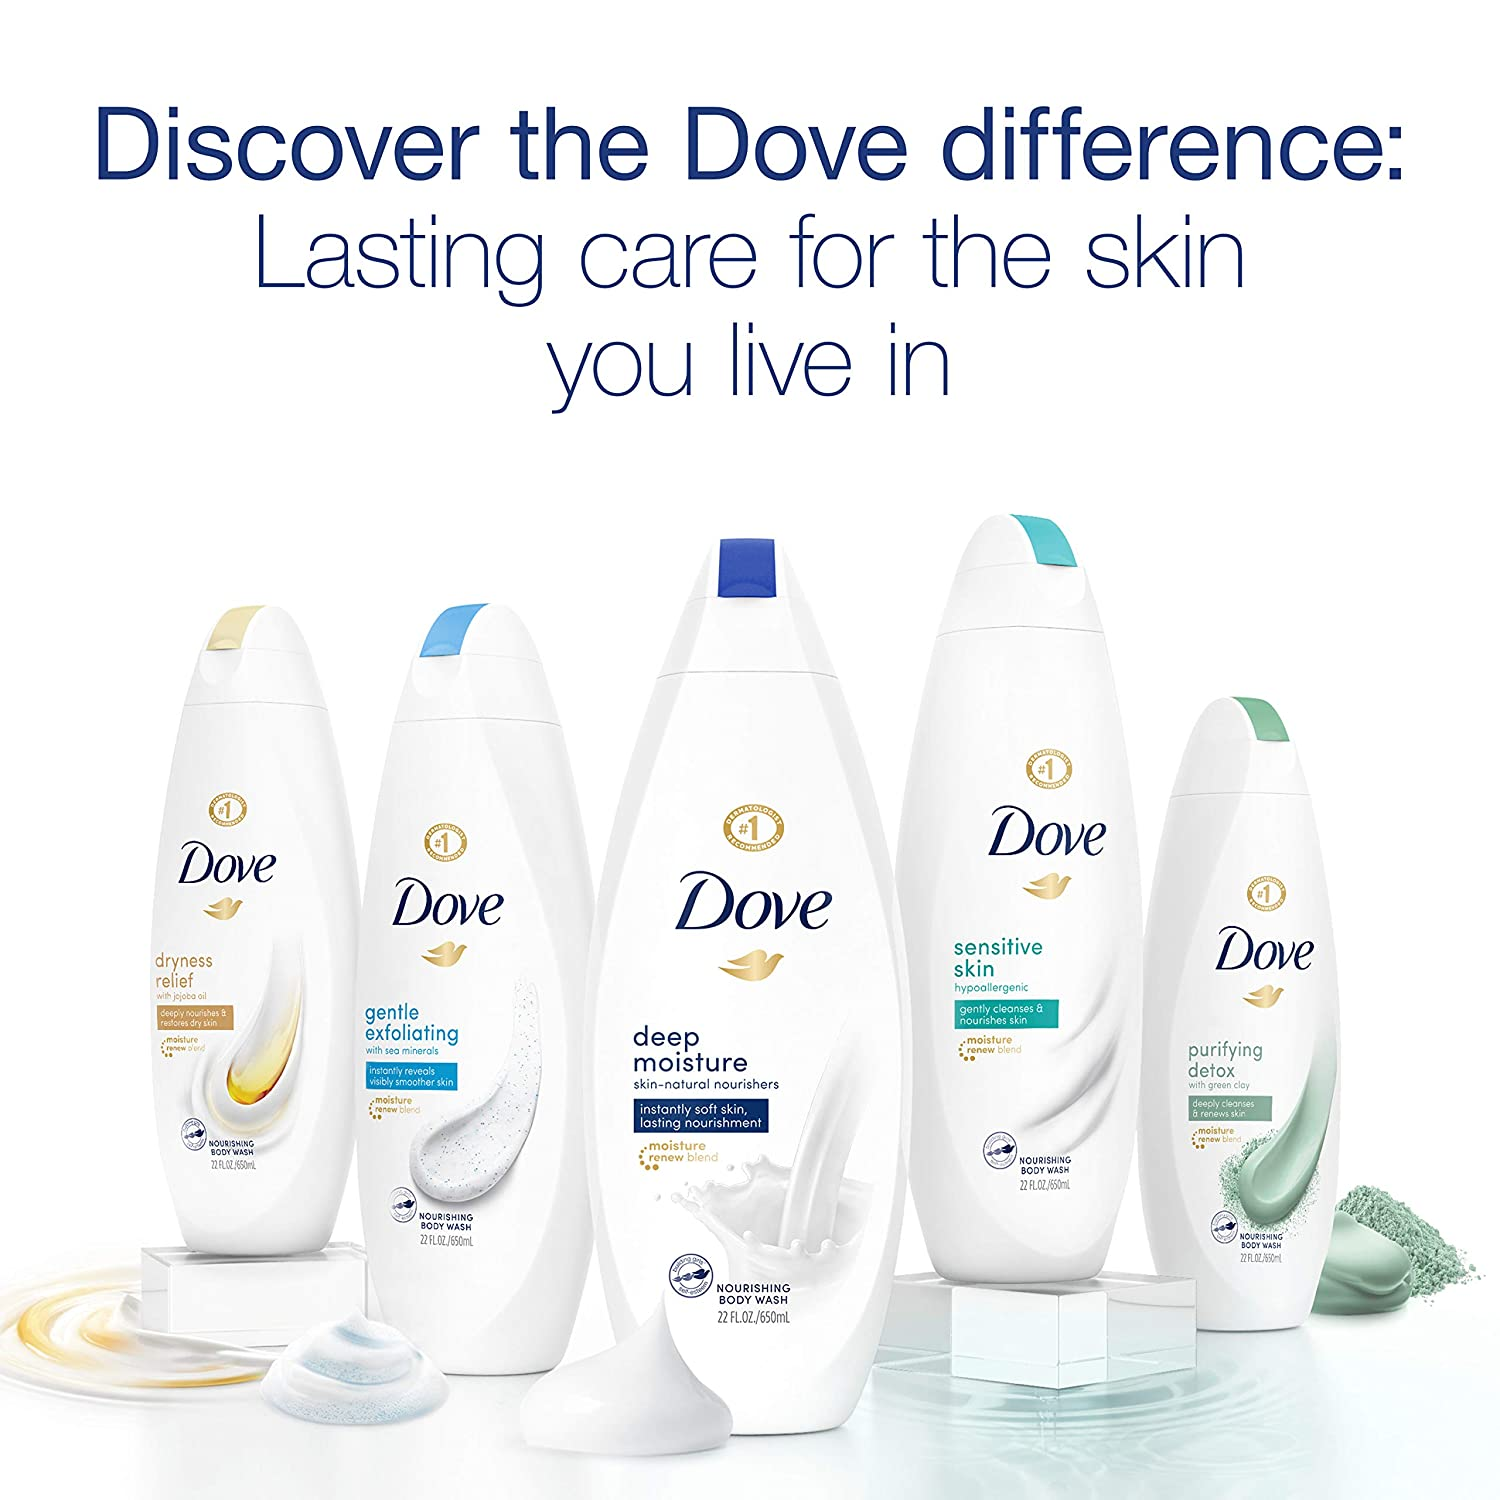 Dove Body Wash For Soft Skin Purifying Detox Cleanser That Effectively Washes Away Bacteria While Nourishing Your Skin 22 oz 4 count : Beauty